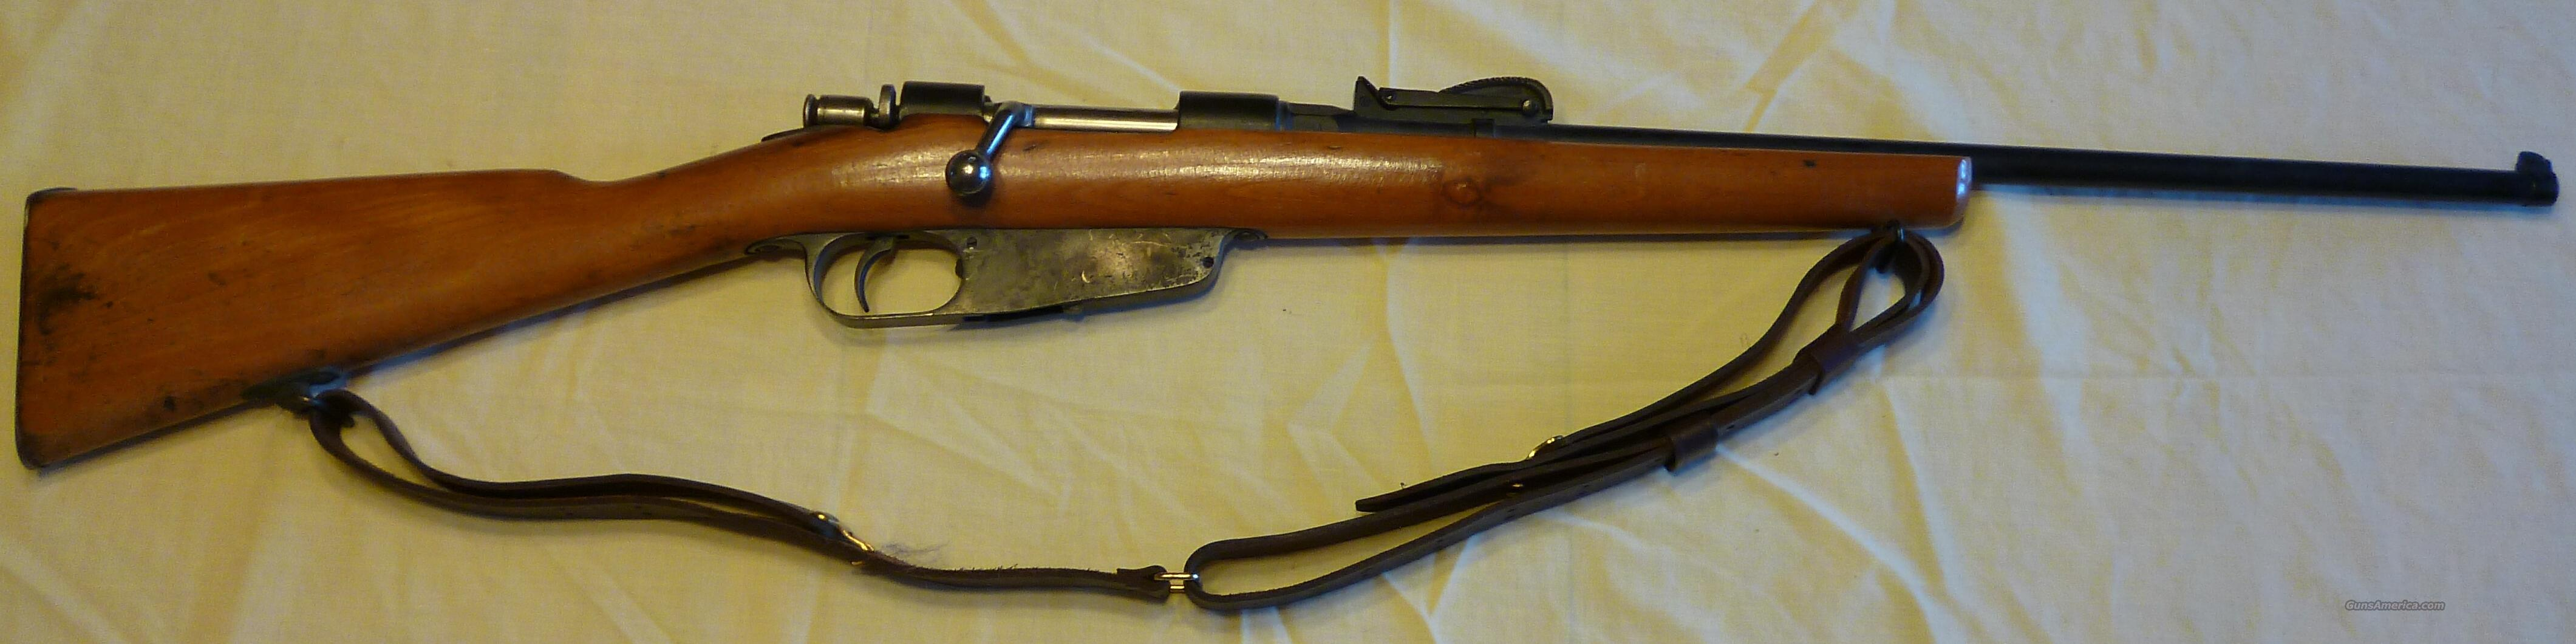 CARCANO 1930 6.5mm ITALIAN - FREE SHIPPING  Guns > Rifles > Military Misc. Rifles Non-US > Other